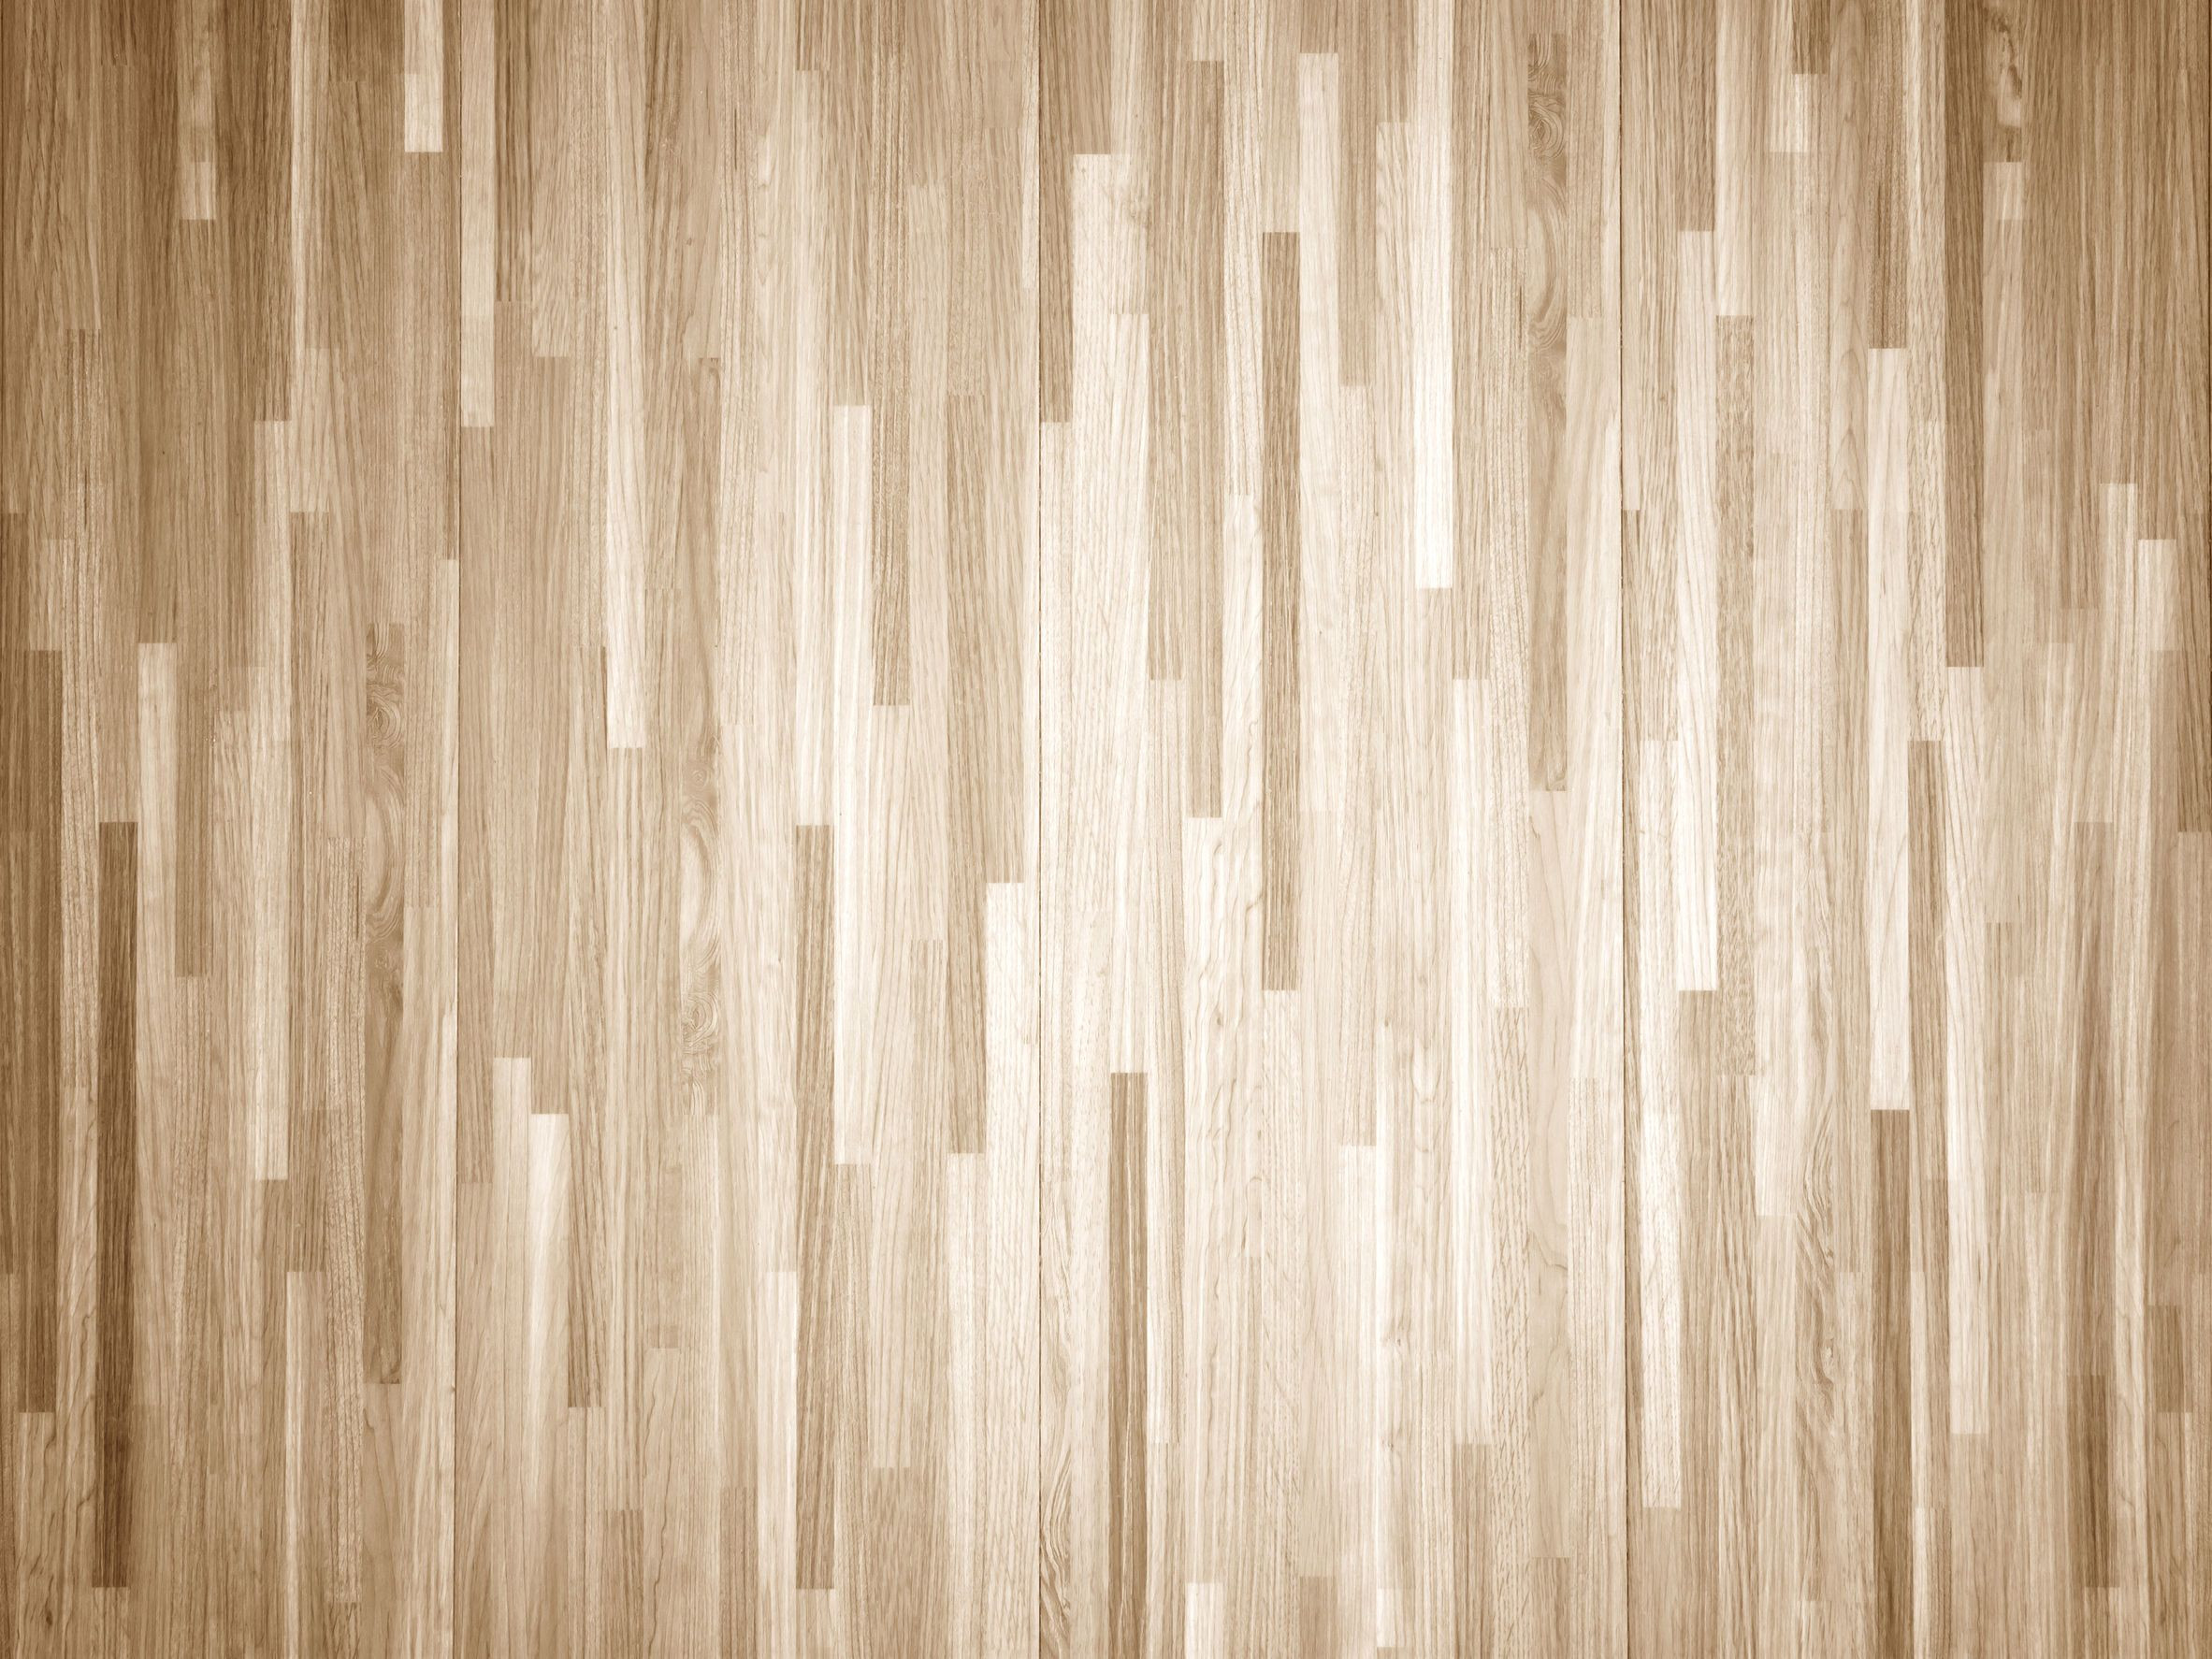 average cost to restain hardwood floors of how to chemically strip wood floors woodfloordoctor com inside you